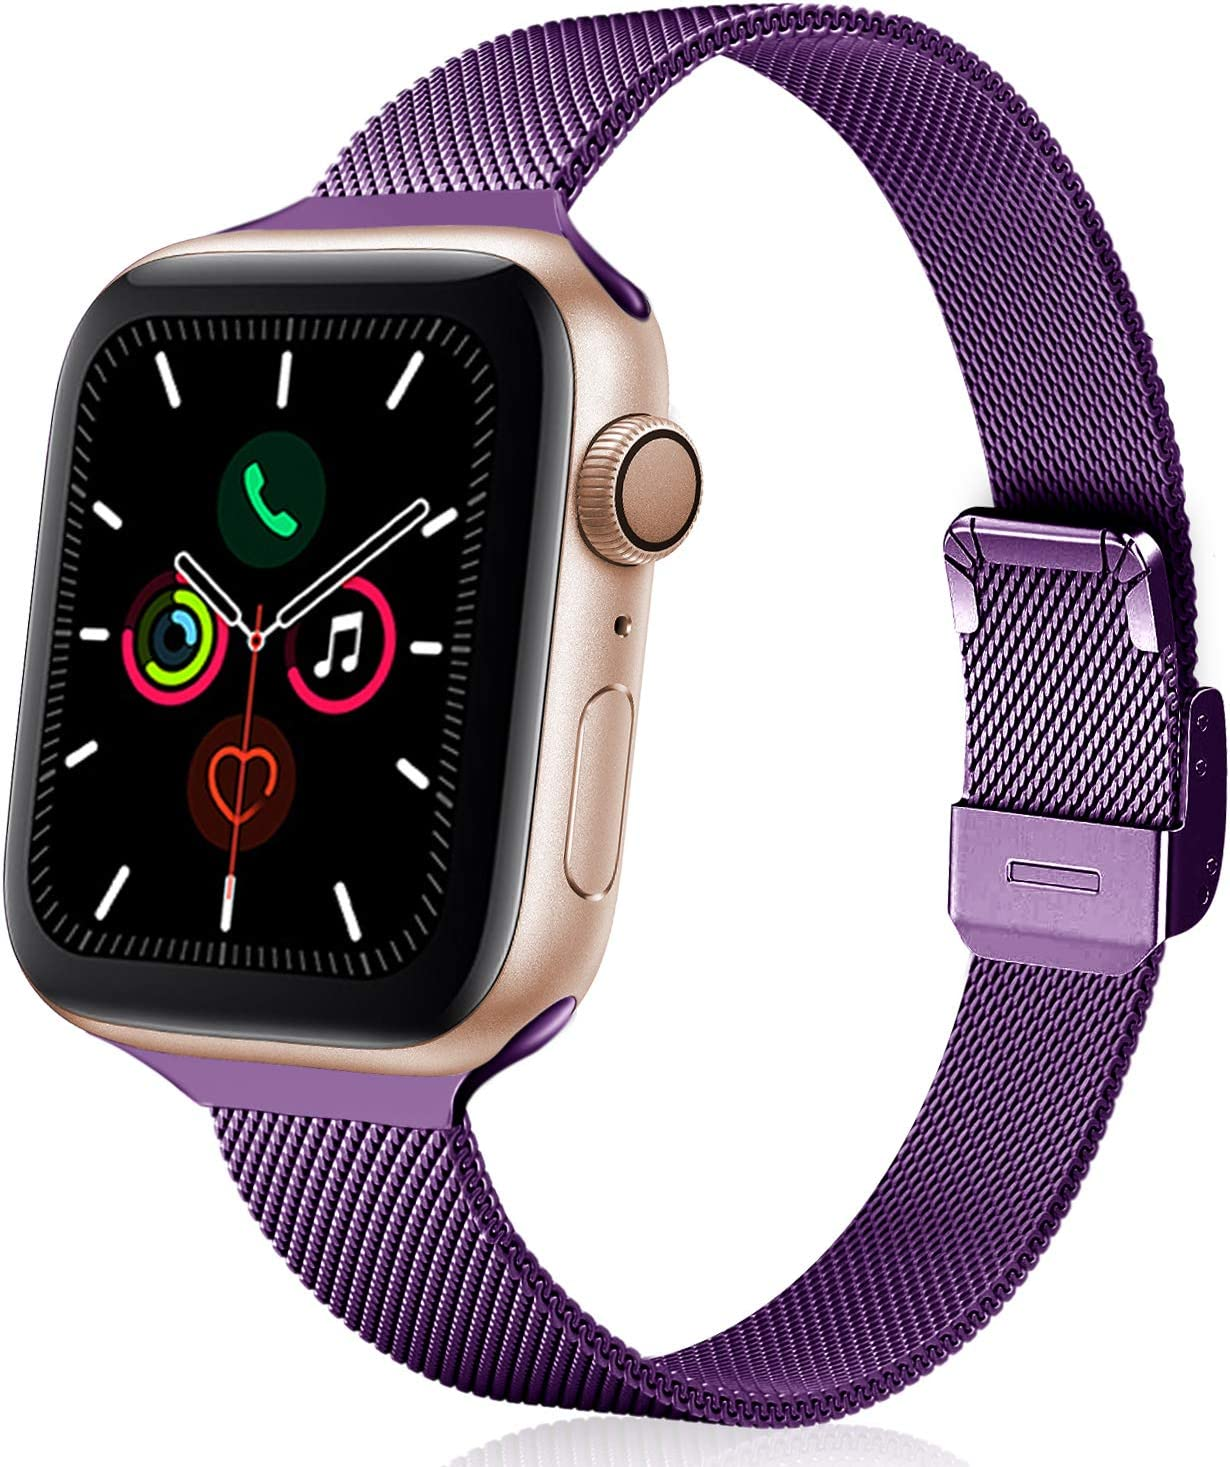 TRA Metal Slim Band Compatible for Apple Watch Band 38mm 40mm 42mm 44mm, Stainless Steel Mesh Adjustable Replacement Thin Strap Wristband for iWatch Series 5/4/3/2/1 Women & Men (Purple, 42mm/44mm)